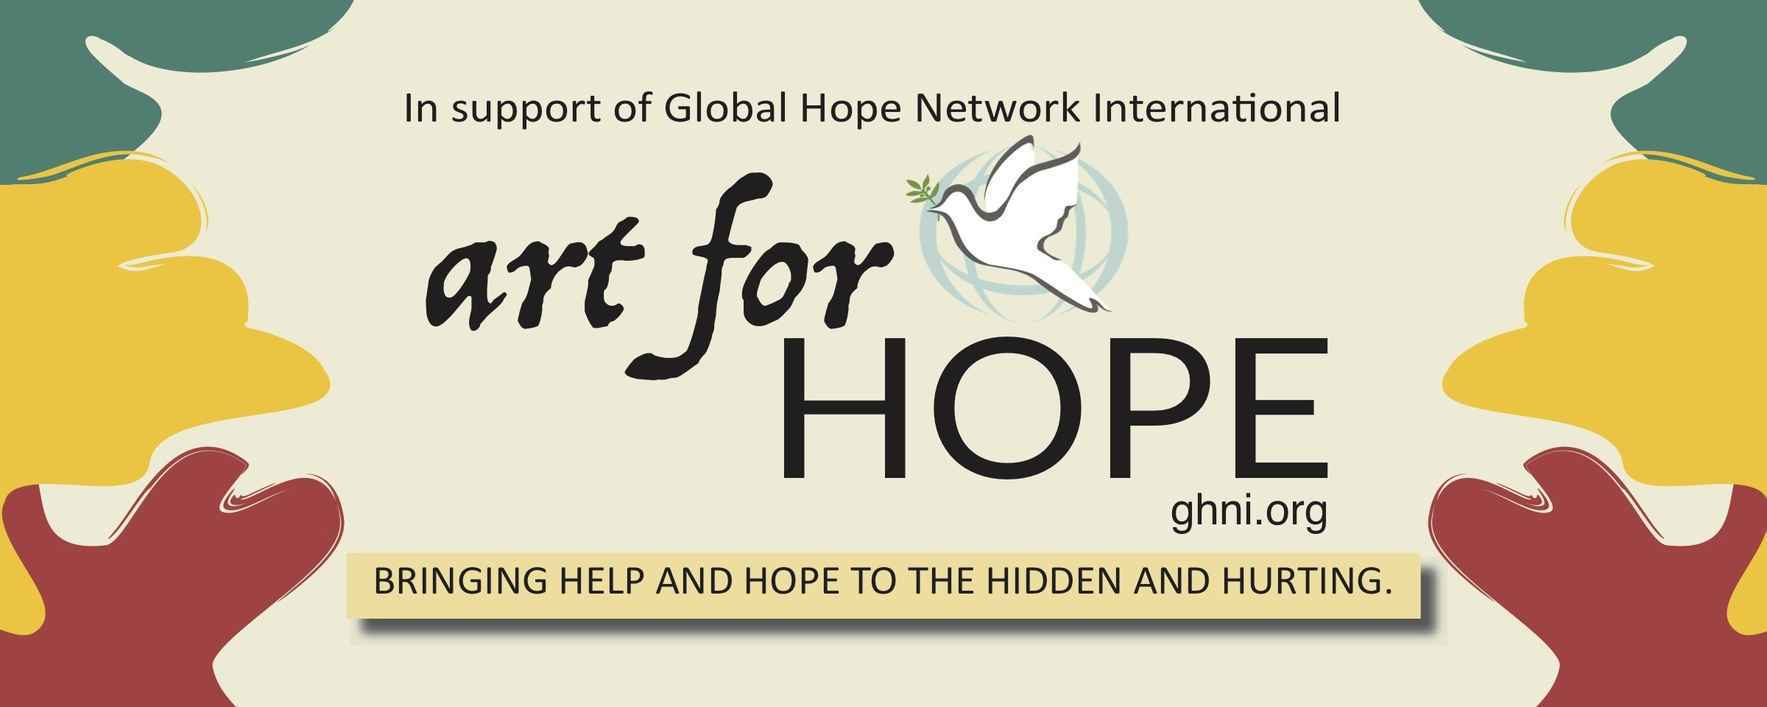 Support Art for Hope  image